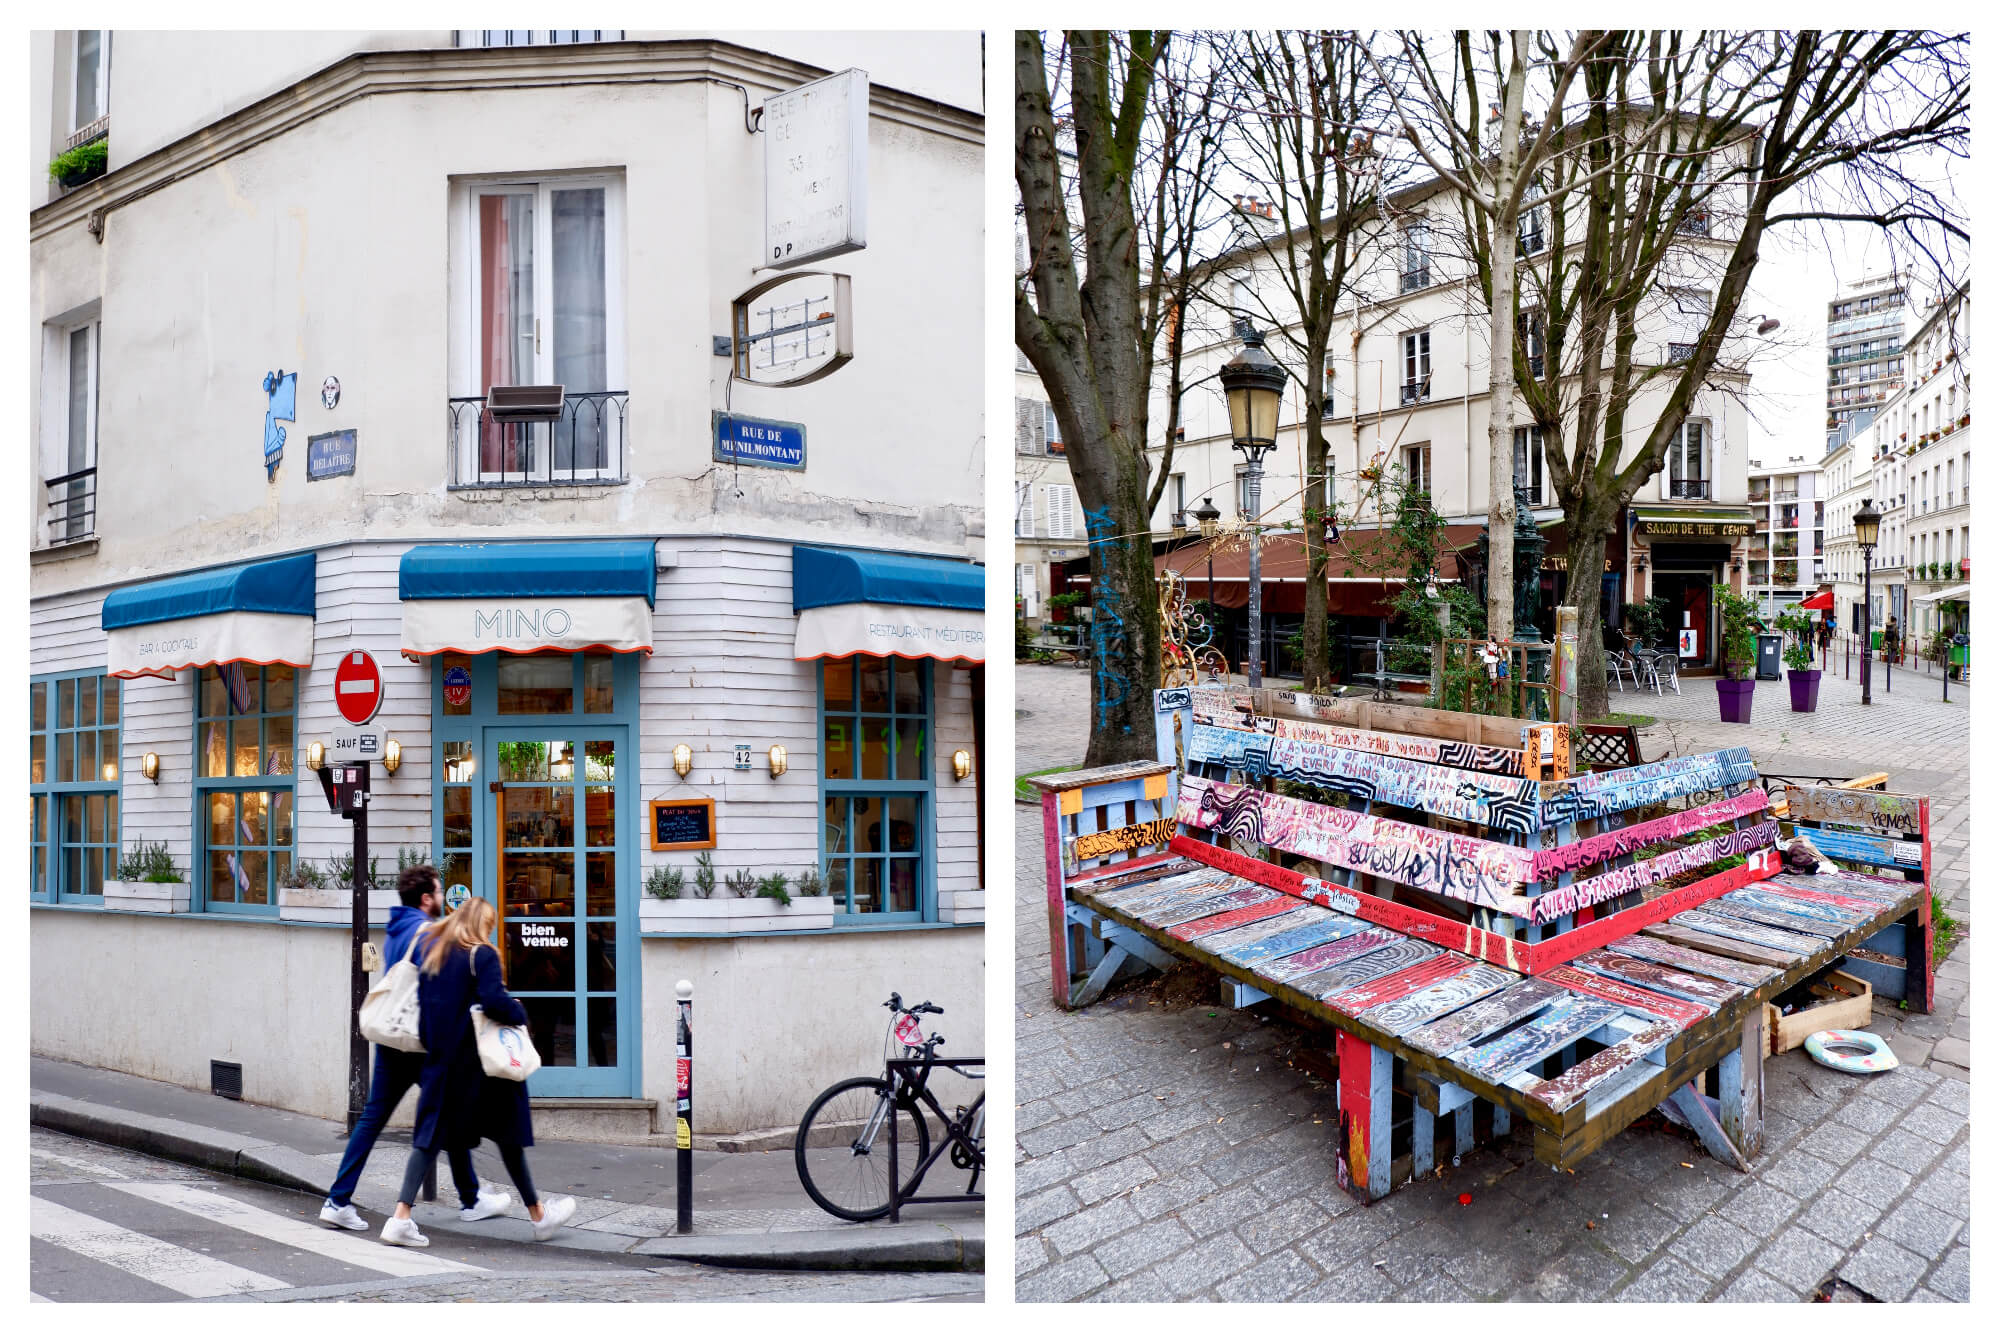 Left: the facade of a restaurant. The facade is wood panelled with blue door and window frames and blue awning. On the awning is the name of the restaurant 'Mino'. A couple are walking past, blurred slightly. Right: A wooden street bench that has been painted in all different colours.